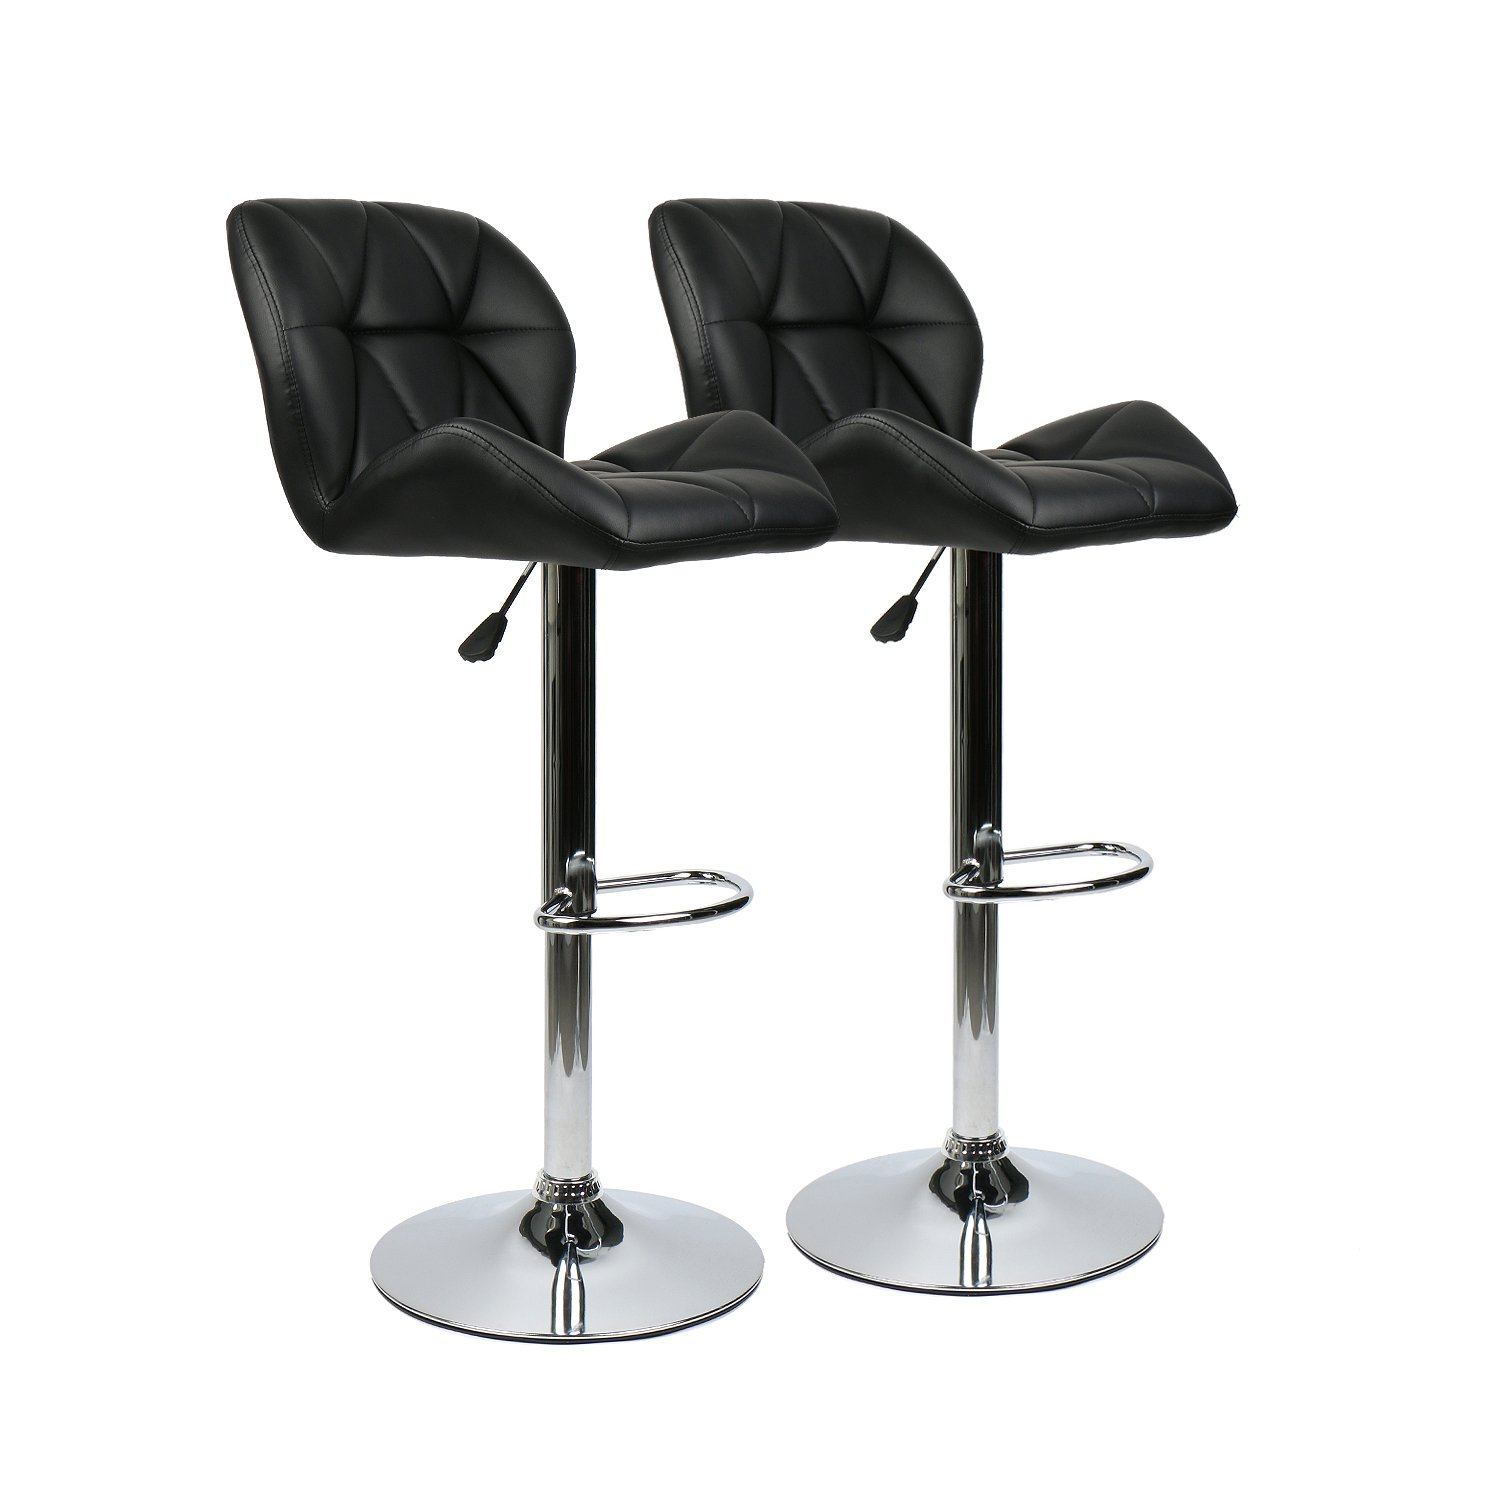 YOURLITEAMZ Bar Stools Modern Swive Adjustable Barstools Sets of 2 Counter Height Leather Padded with Shell Back Home Bar Restaurant Dining Room Furniture Contemporary Hydraulic Chairs (Black) by YOURLITEAMZ